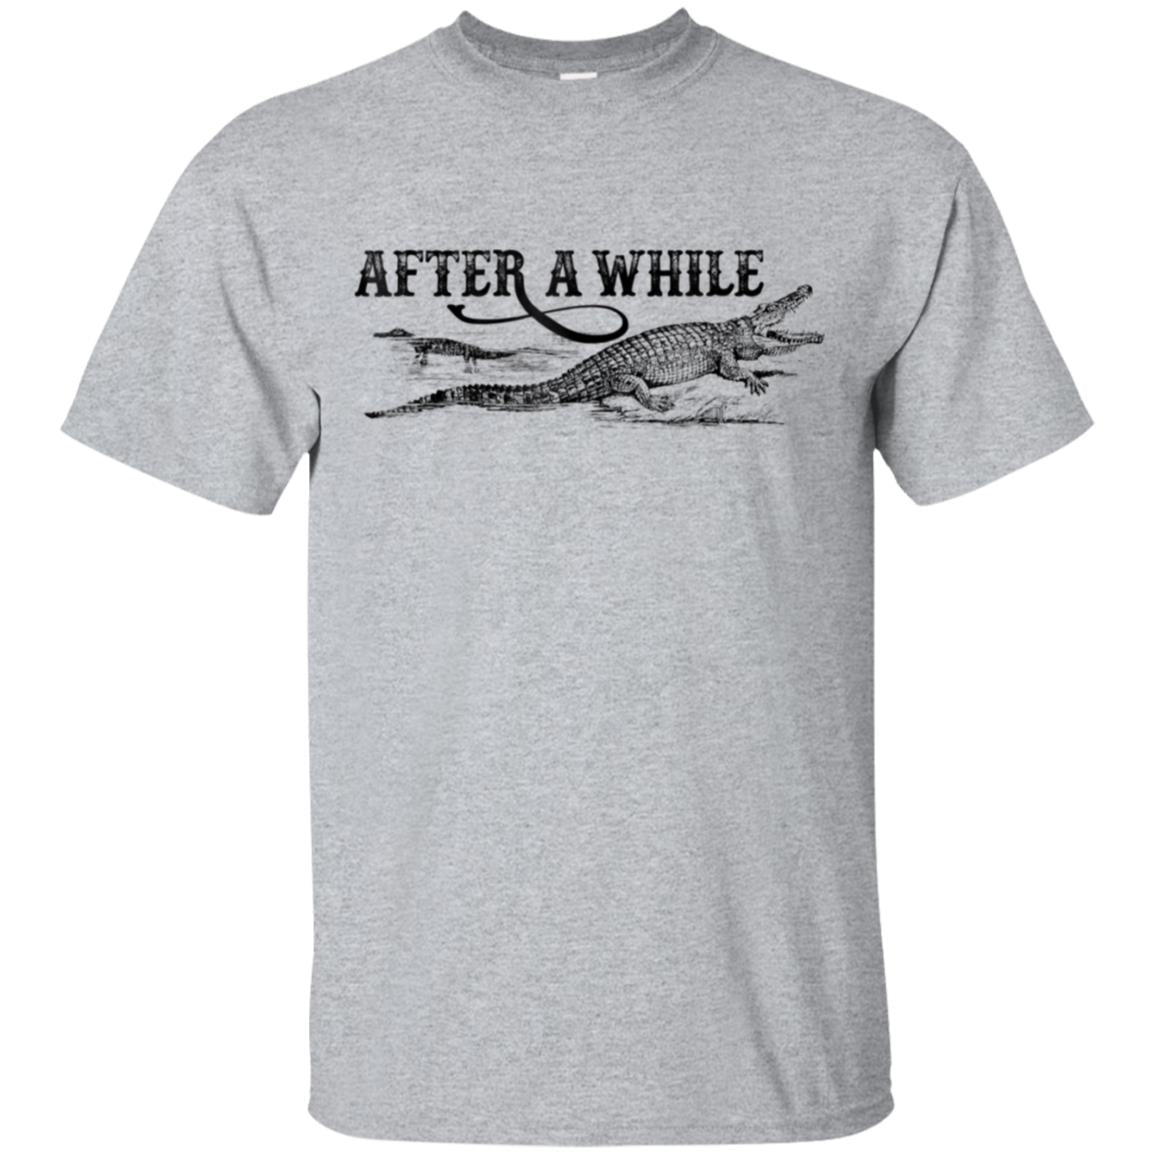 After A While Crocodile T-Shirt 99promocode